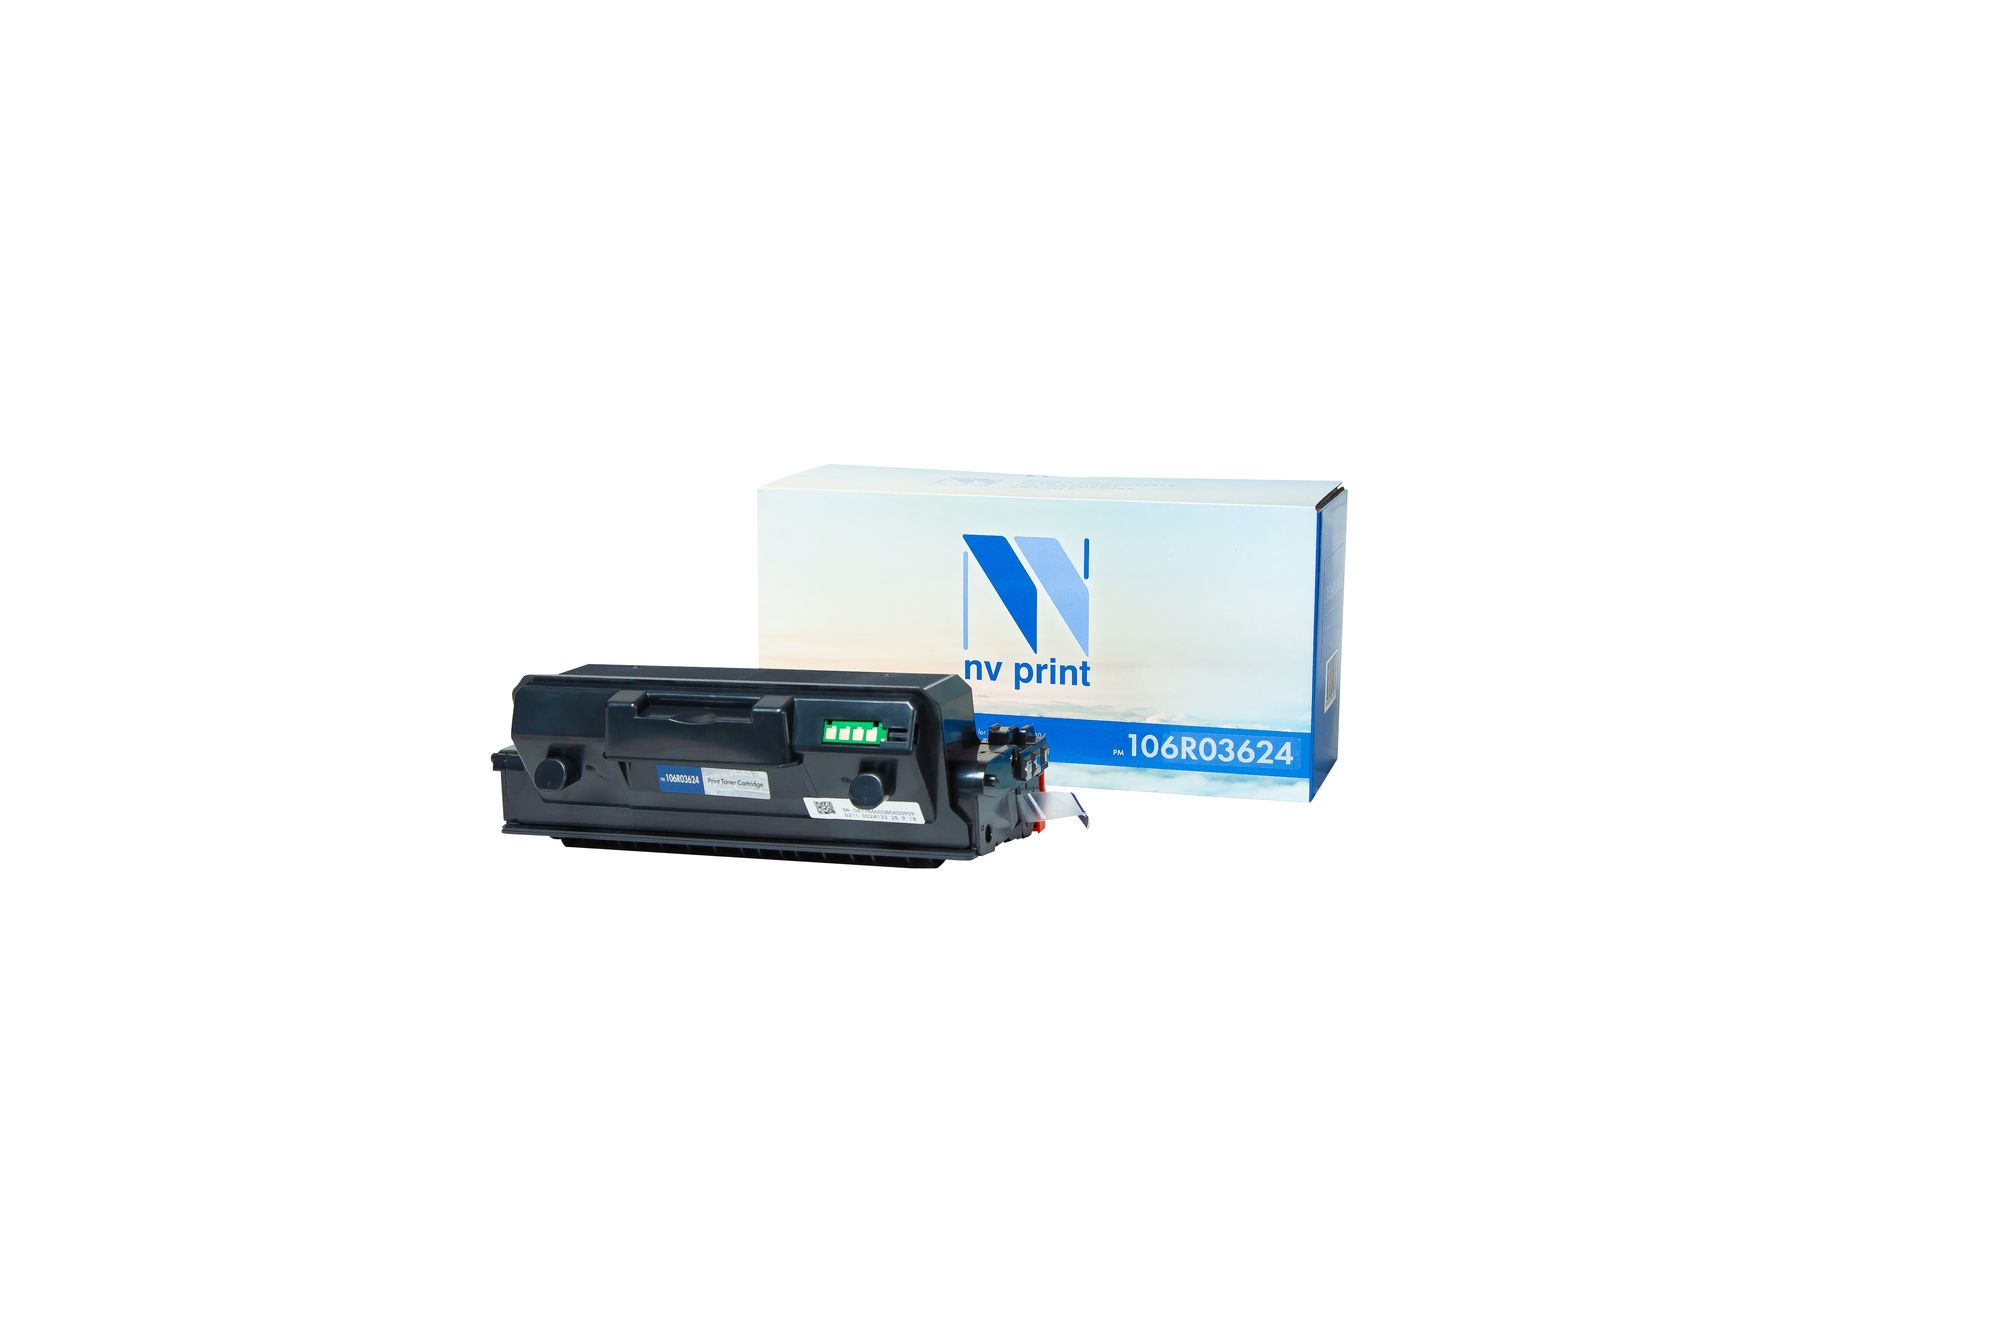 Тонер-картридж NV Print совместимый NV-106R03624 для Xerox Phaser-3330/WC-3335 (15000k) картридж nv print 106r02306 для xerox phaser 3320 11000k